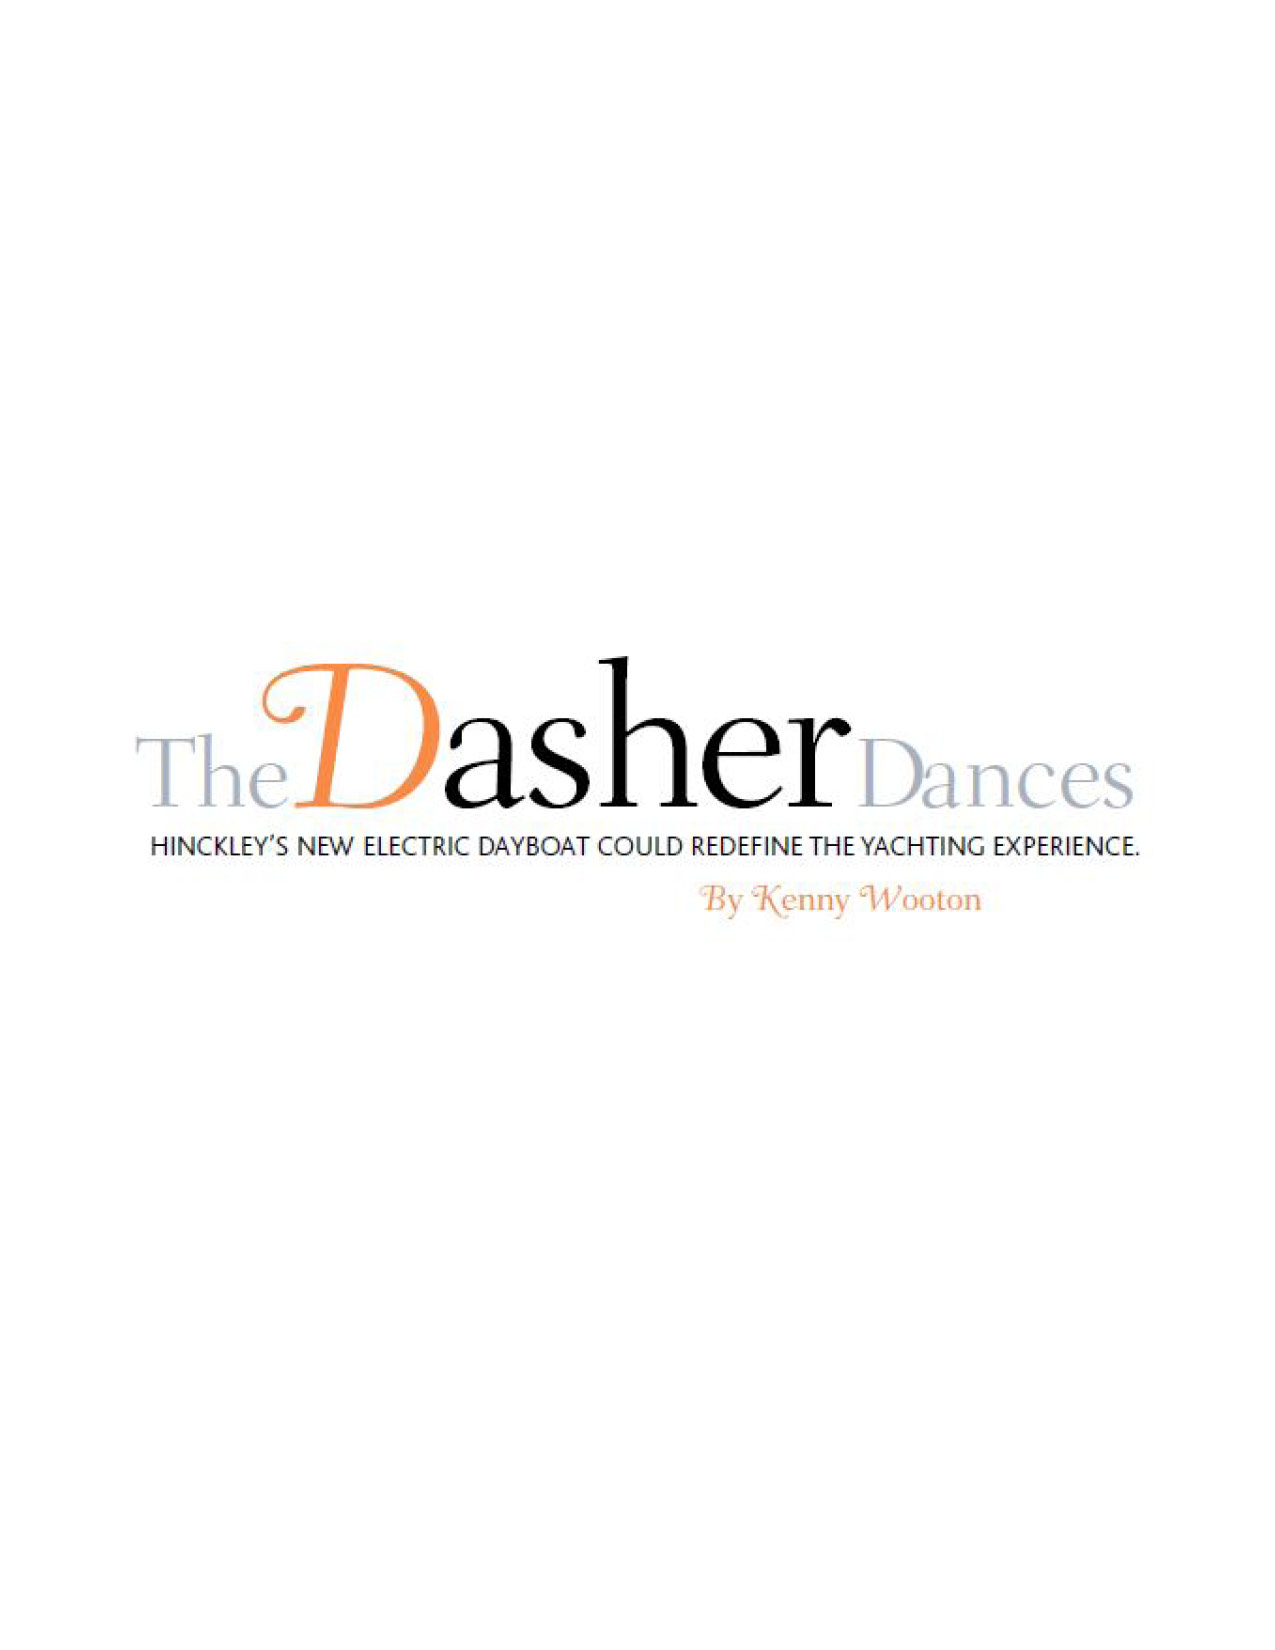 Dasher Featured in Yachts International